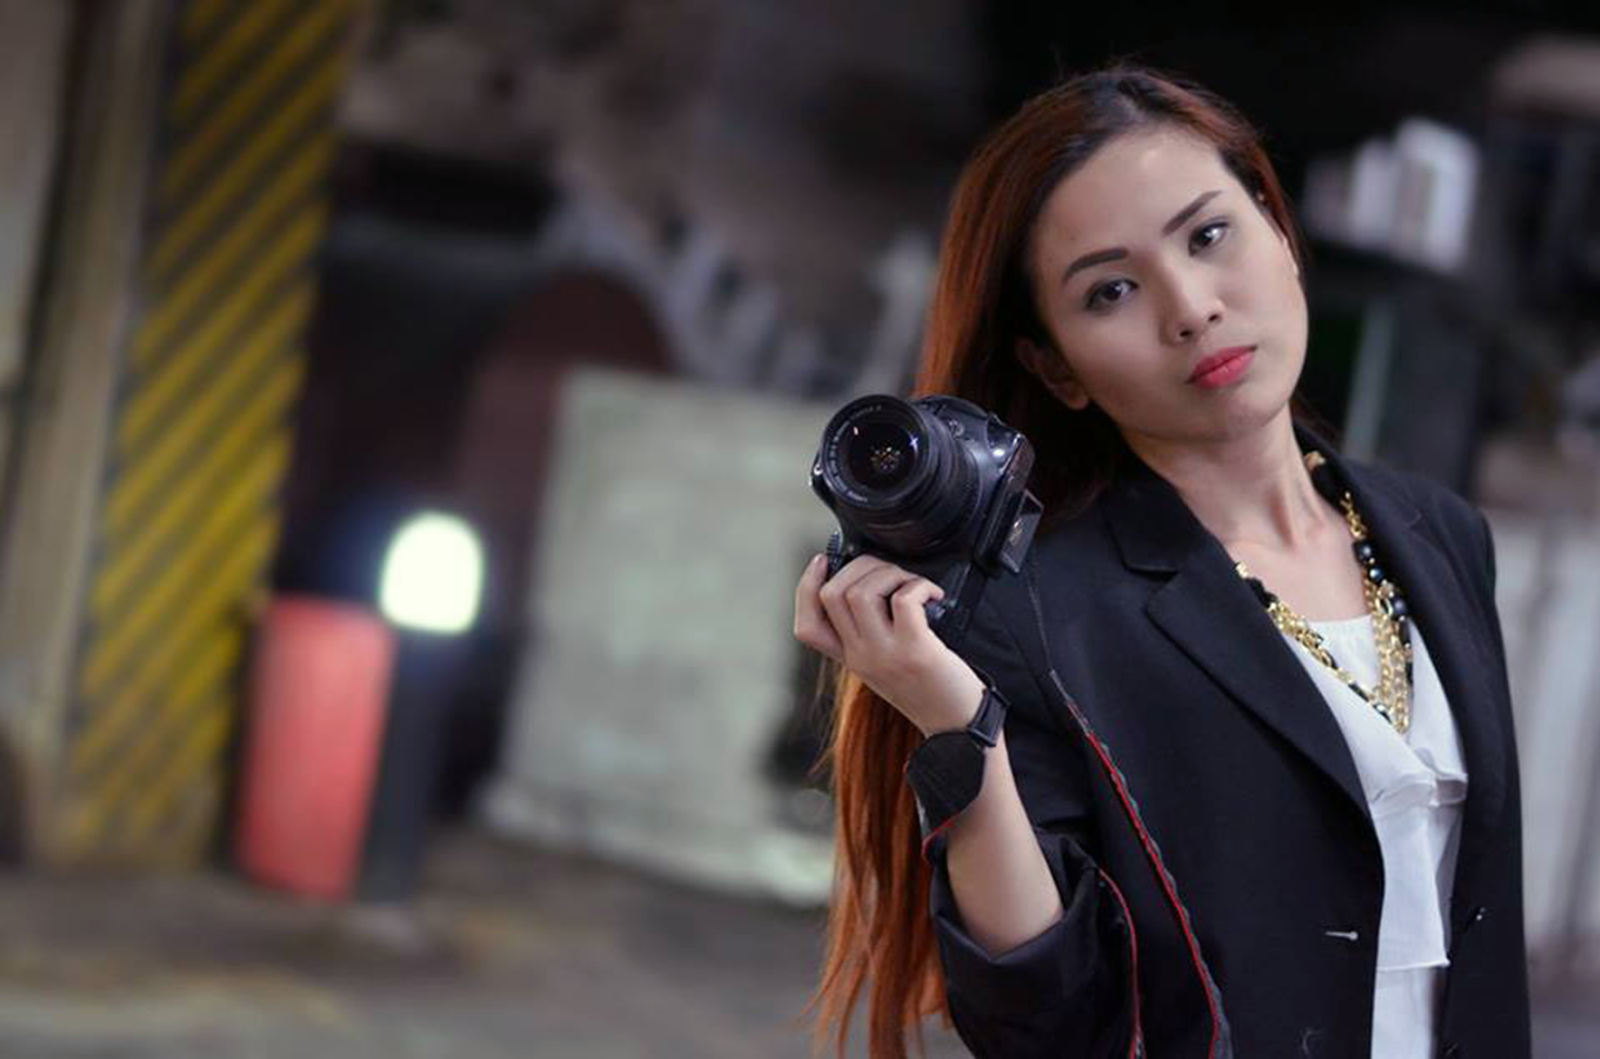 Rhoda Fajardo | Rebel Architect, Manila Female Photographer and Coffee Addict